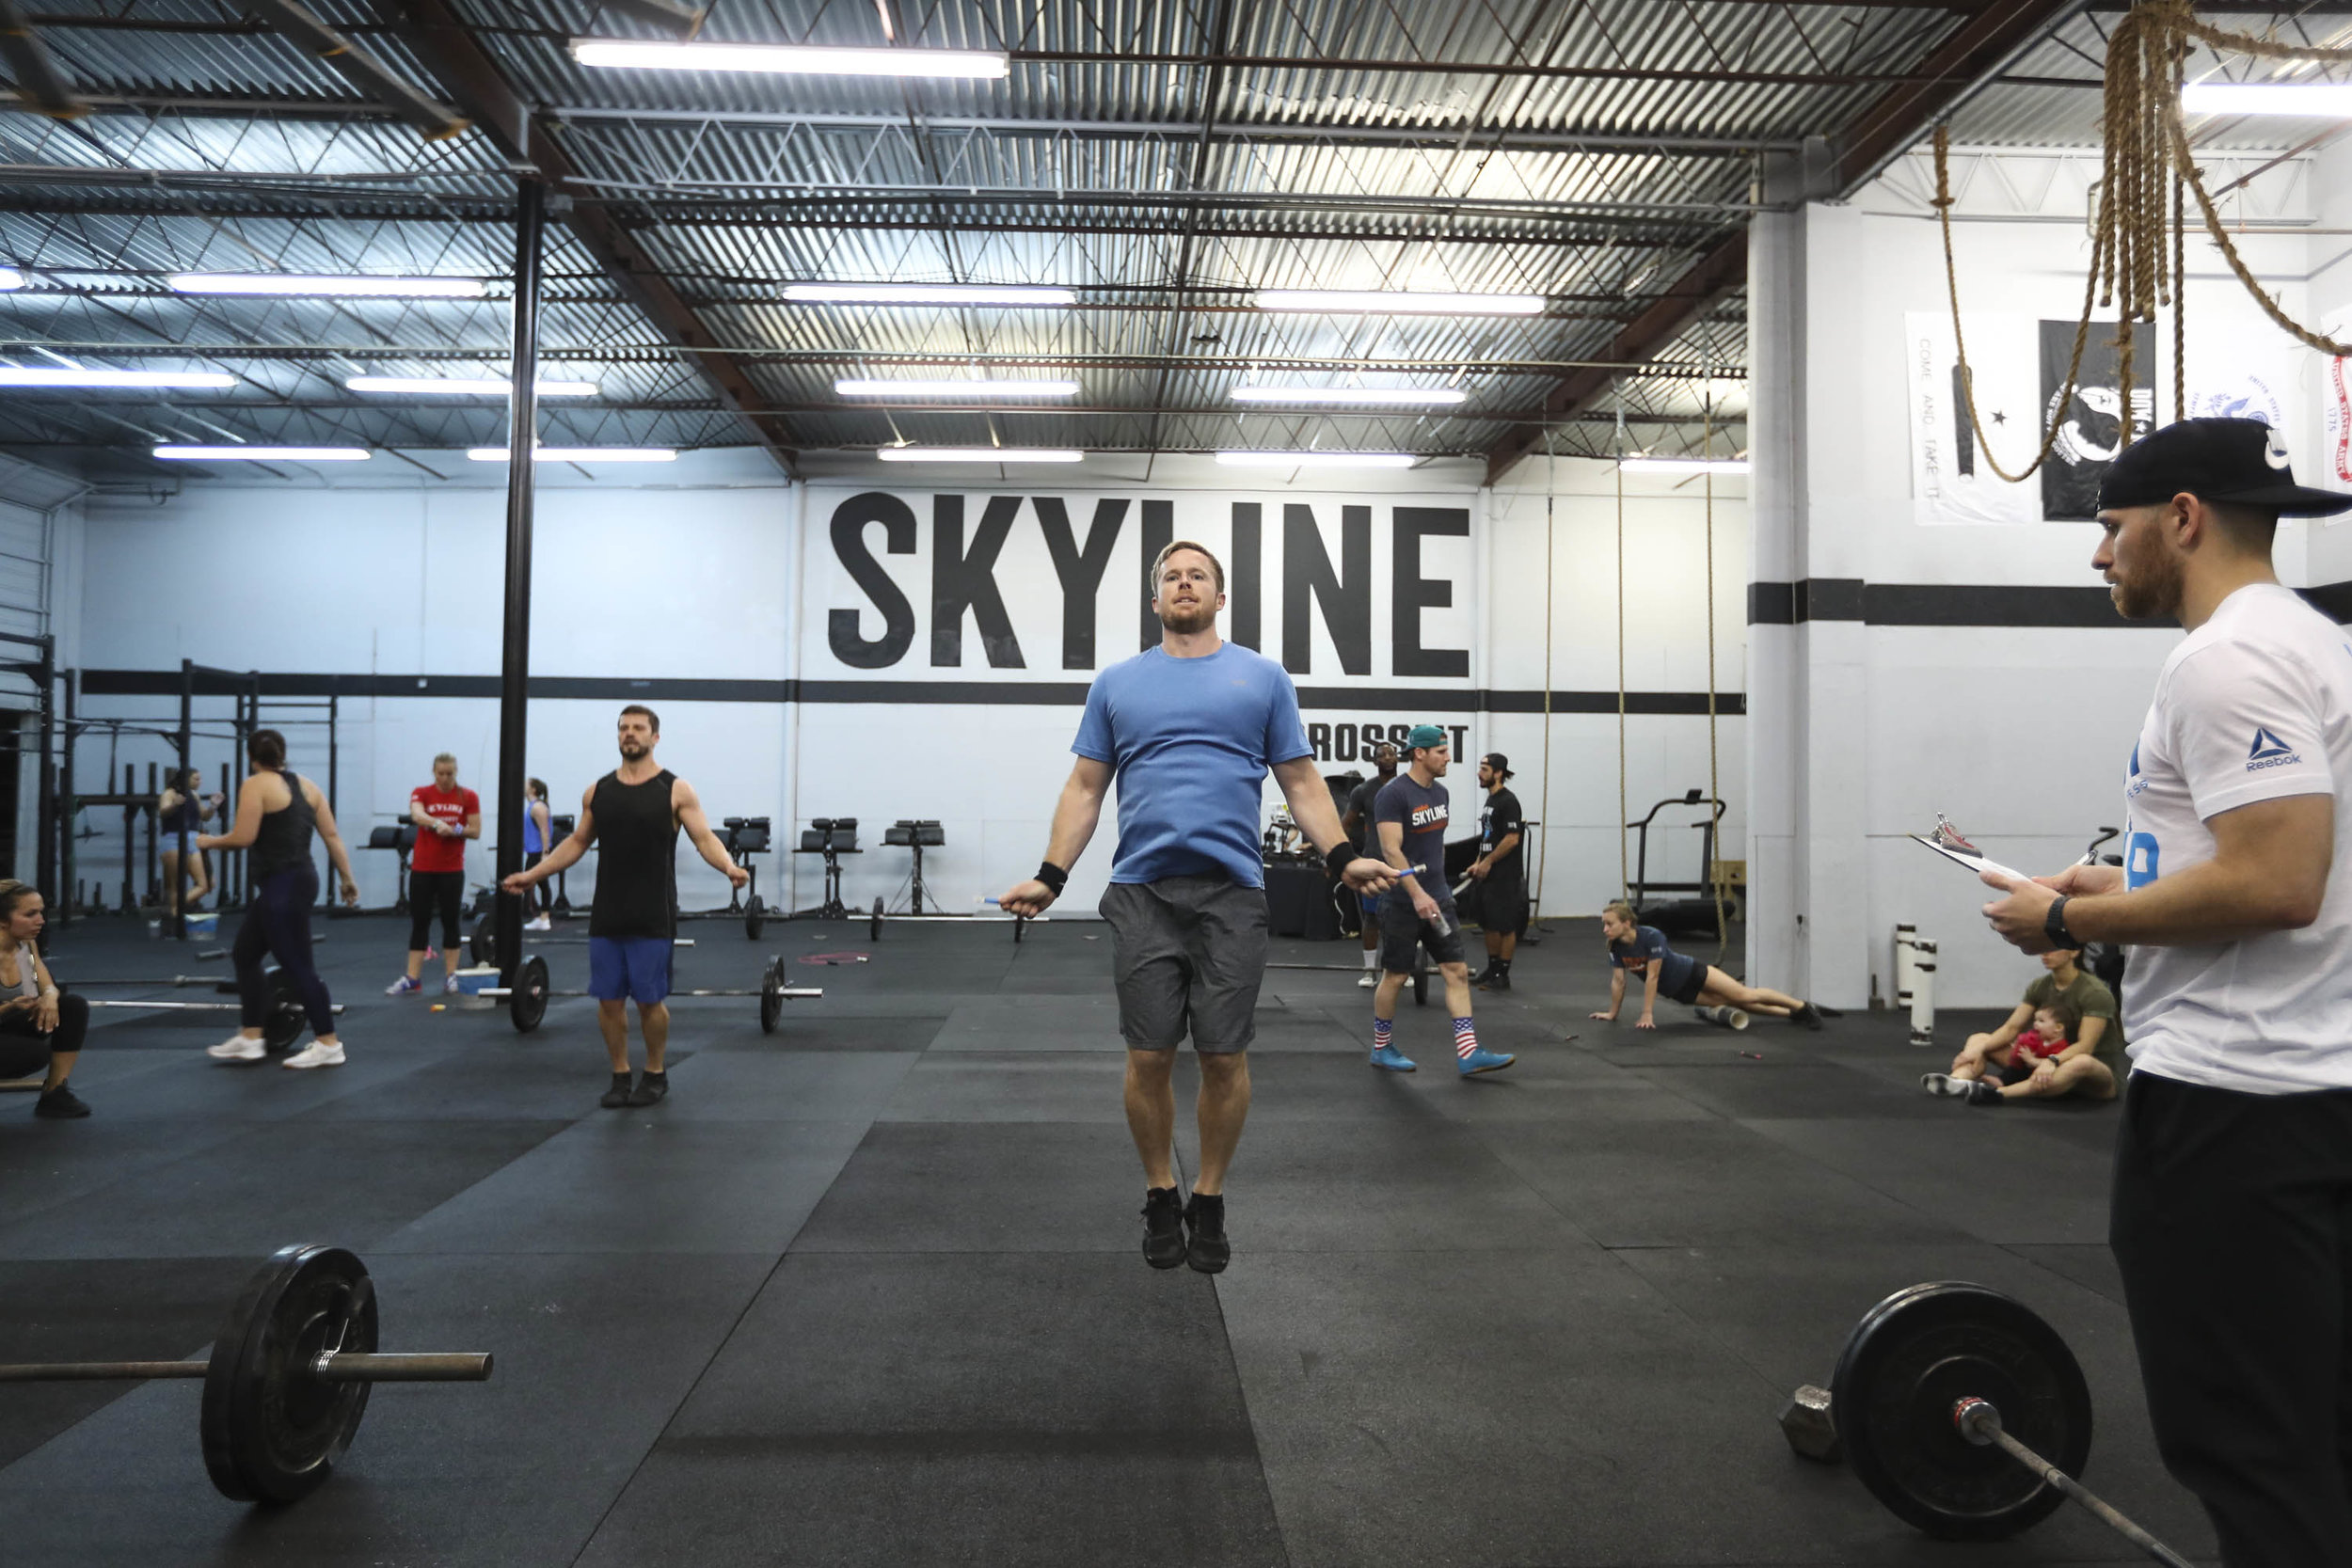 Brad showing a great example of how to execute Double-Unders with a jumprope. Notice his relaxed upper body, rigid midline, and hands down by his side.  This allows the wrist to whip the rope instead of recruiting the shoulders which can lead to the fatigue of the upper body.